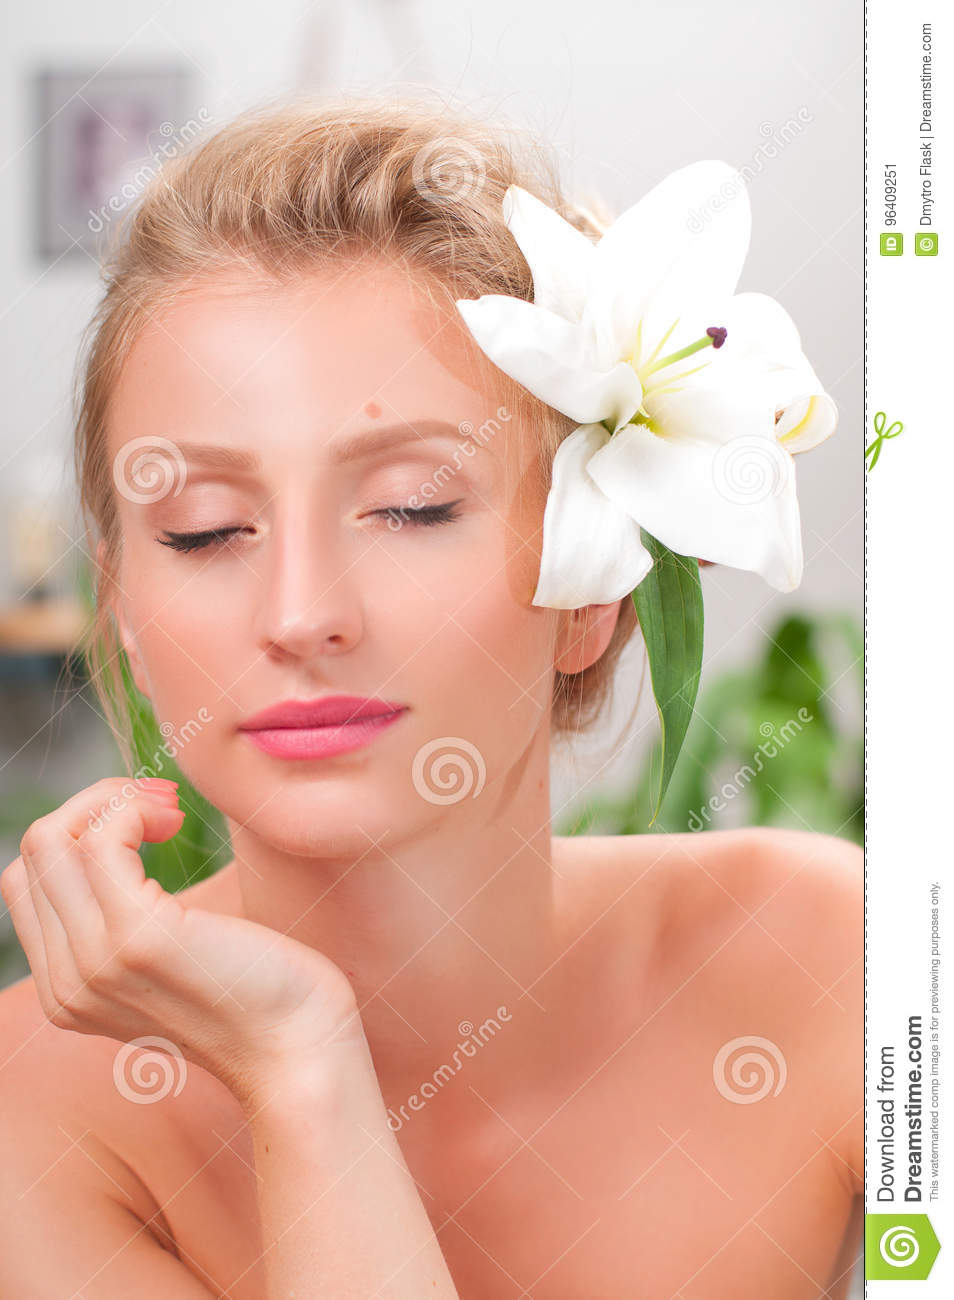 Beauty and spa. Beautiful young woman with clean fresh skin